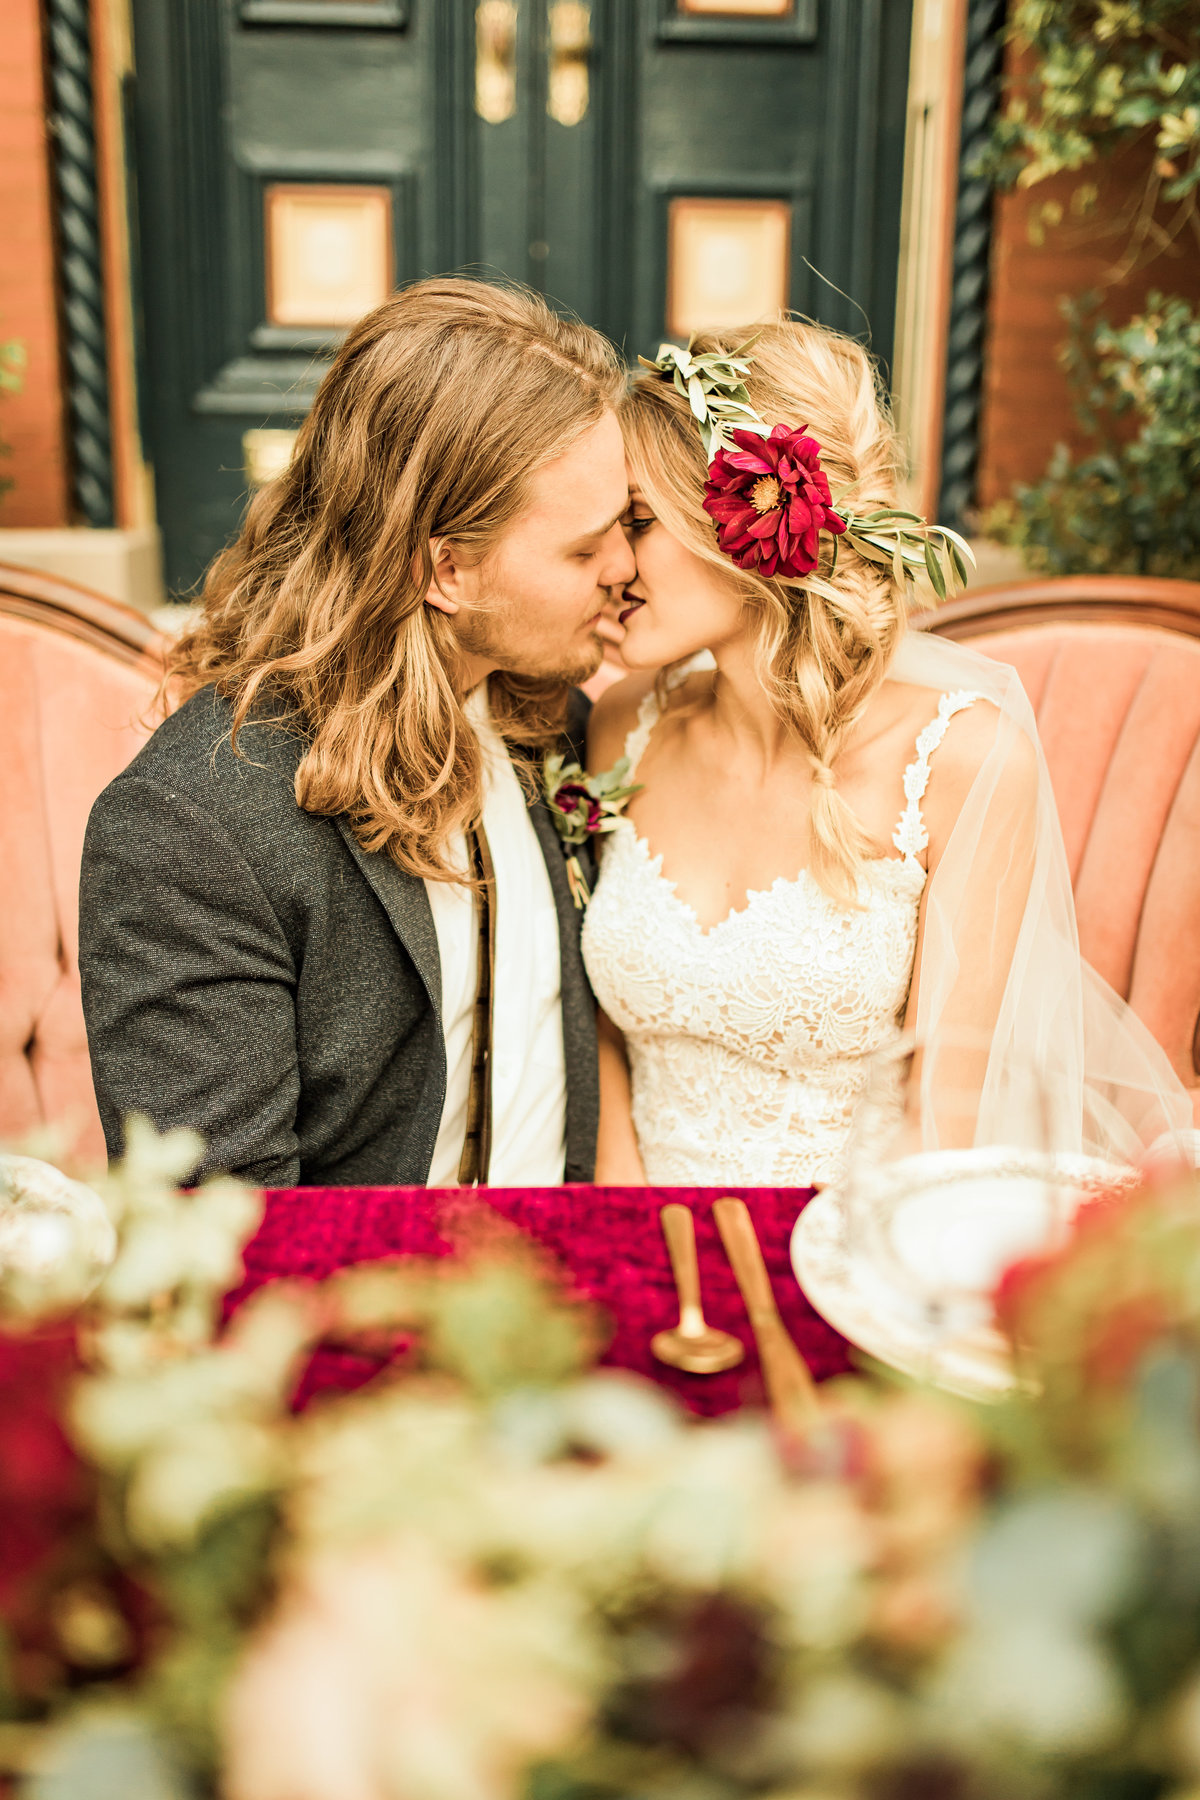 Fall Boho-Inspired Styled Shoot Lafayette Square Historic District  St. Louis, Missouri  Allison Slater Photography  Wedding Photographer242